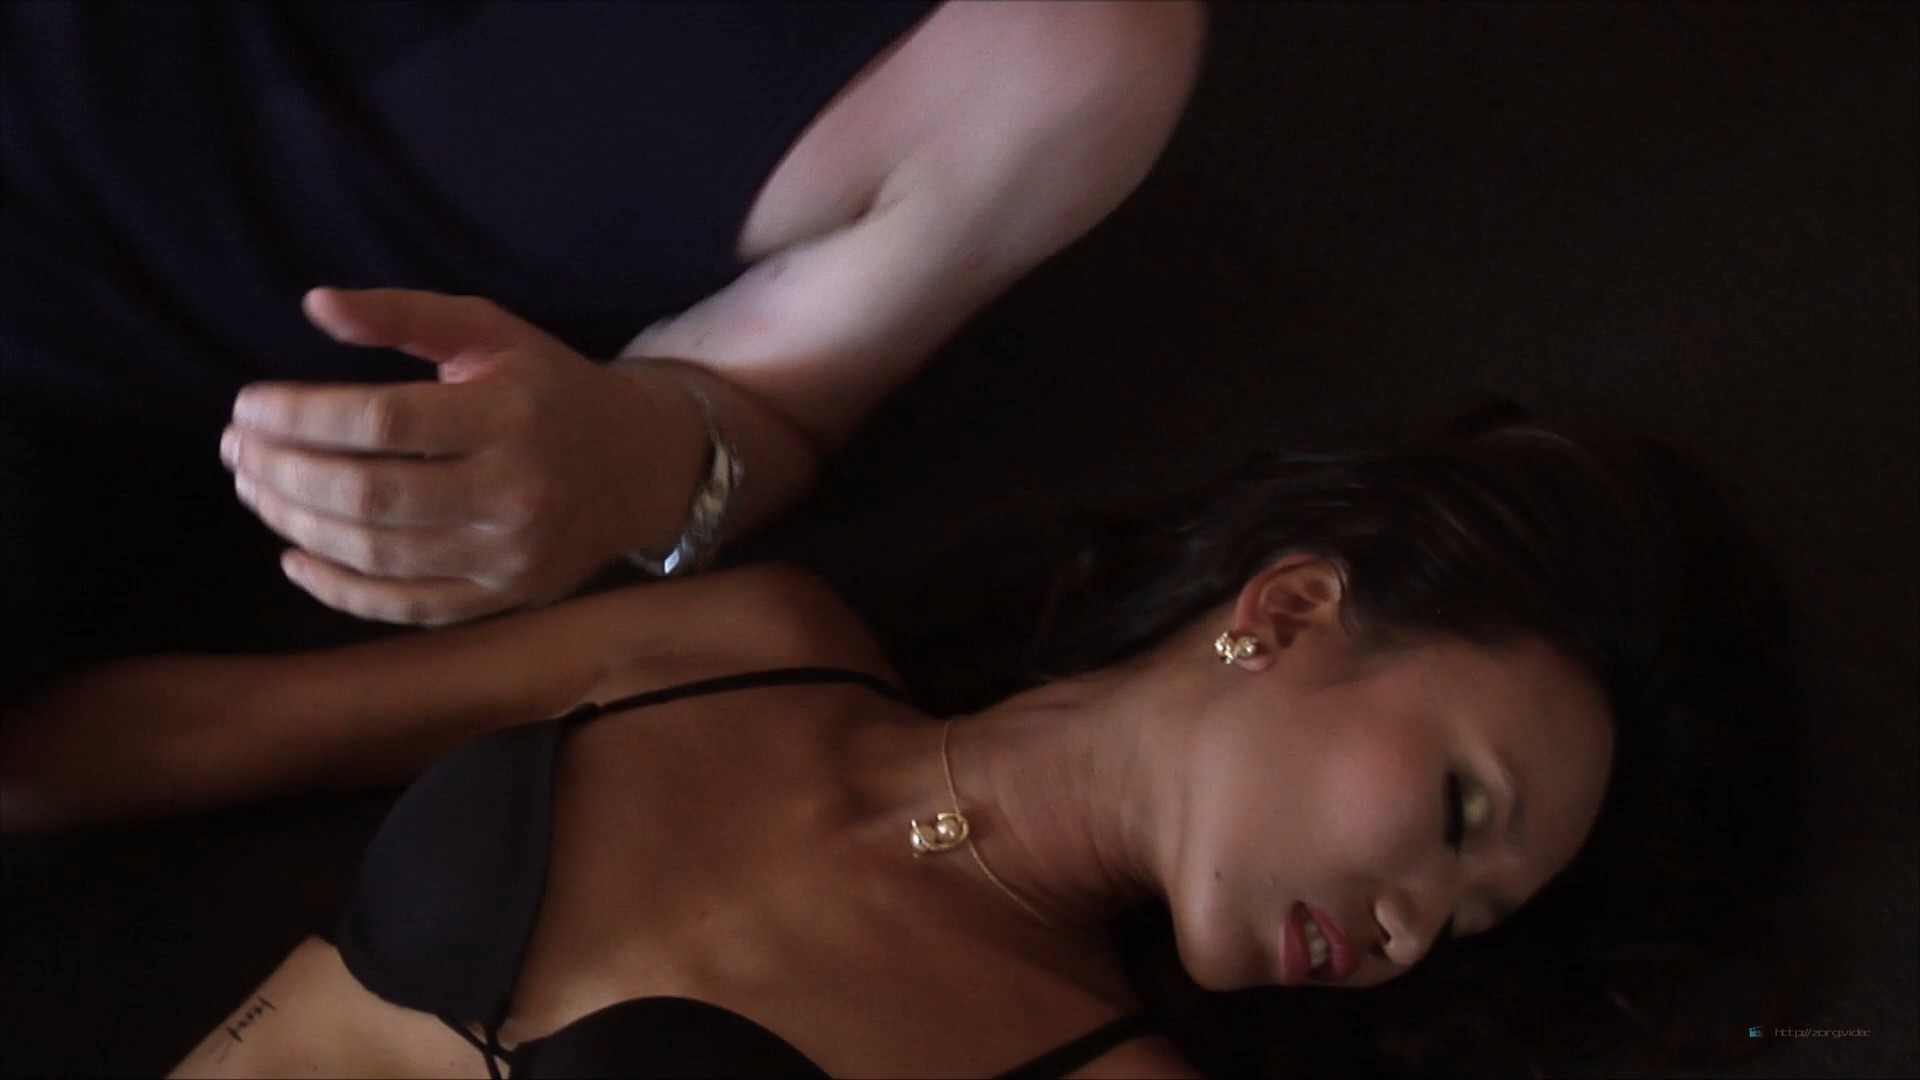 Mary Annegeline nude sex Jeannette Valencia sexy - Revenge of the Gweilo (2016) HD 1080p Web (2)